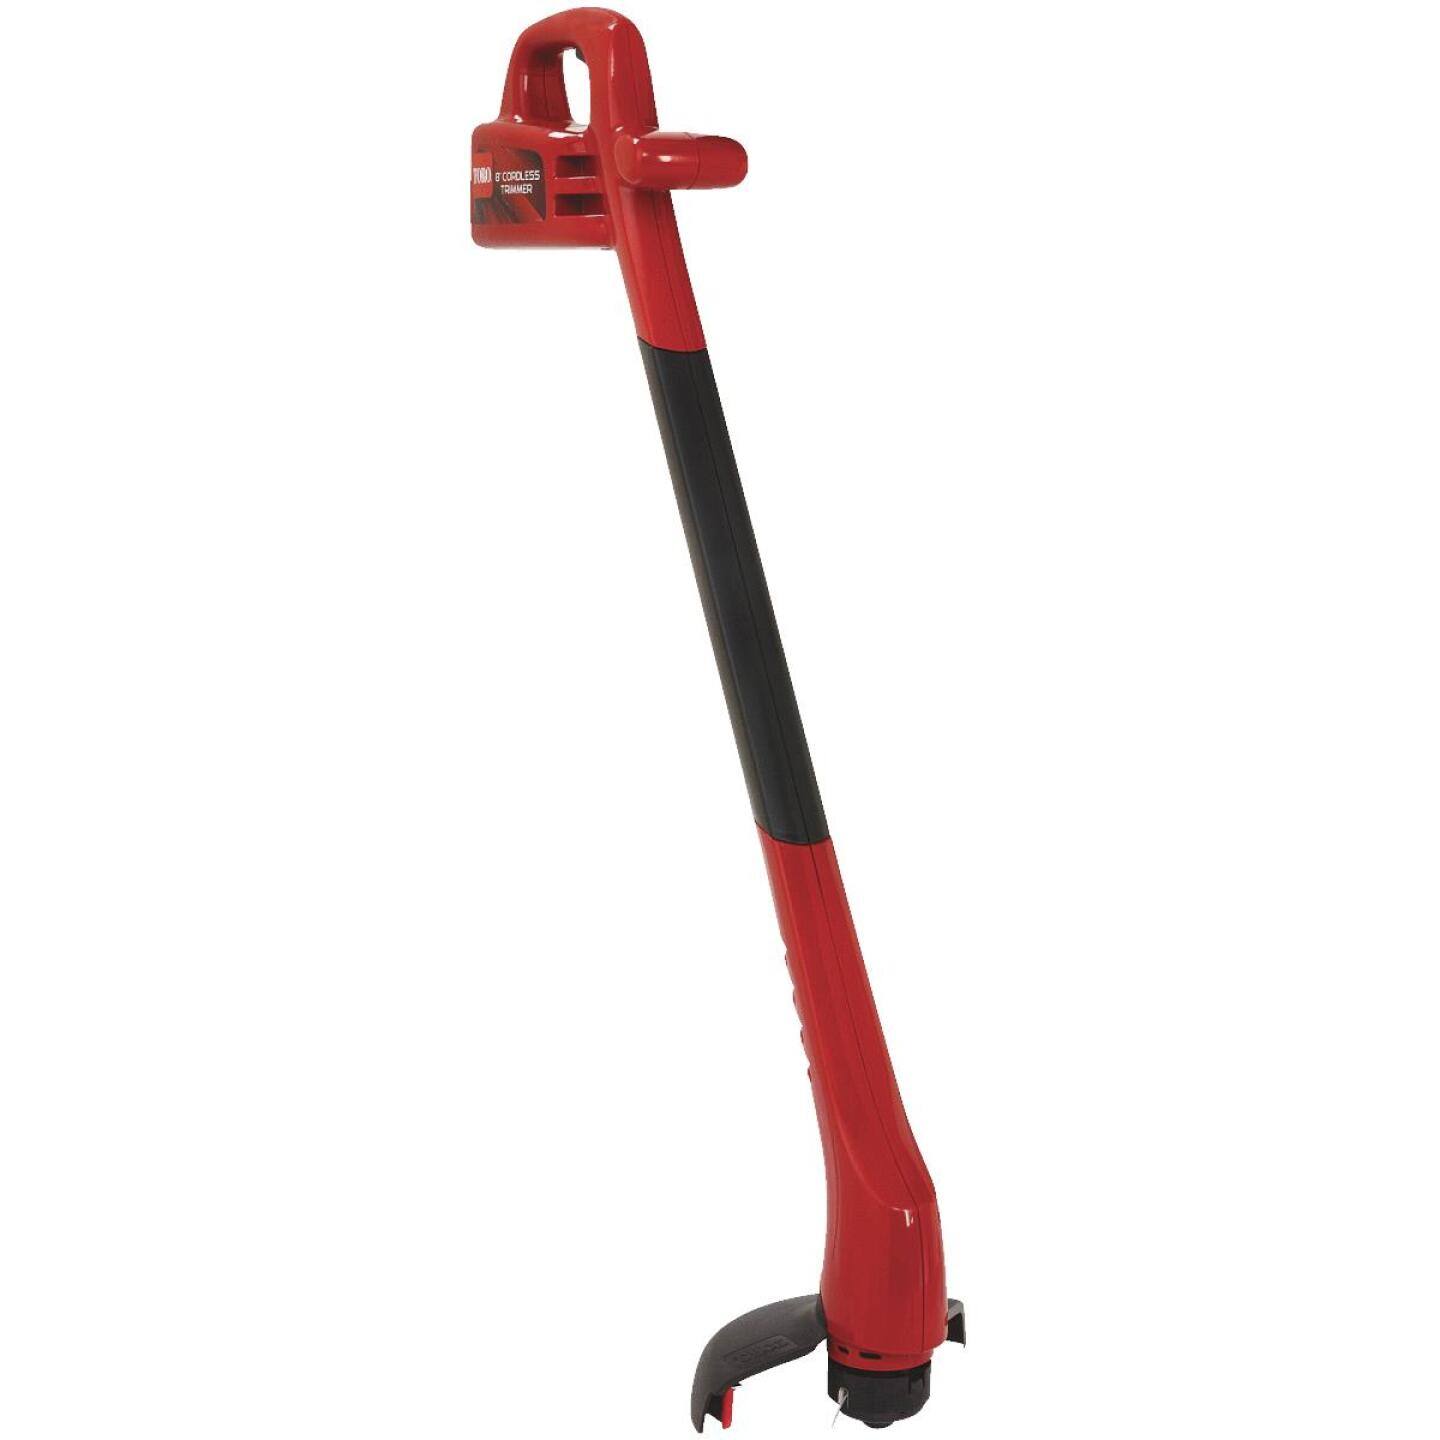 Toro 12V 8 In. Ni-Cad Straight Cordless String Trimmer Image 8